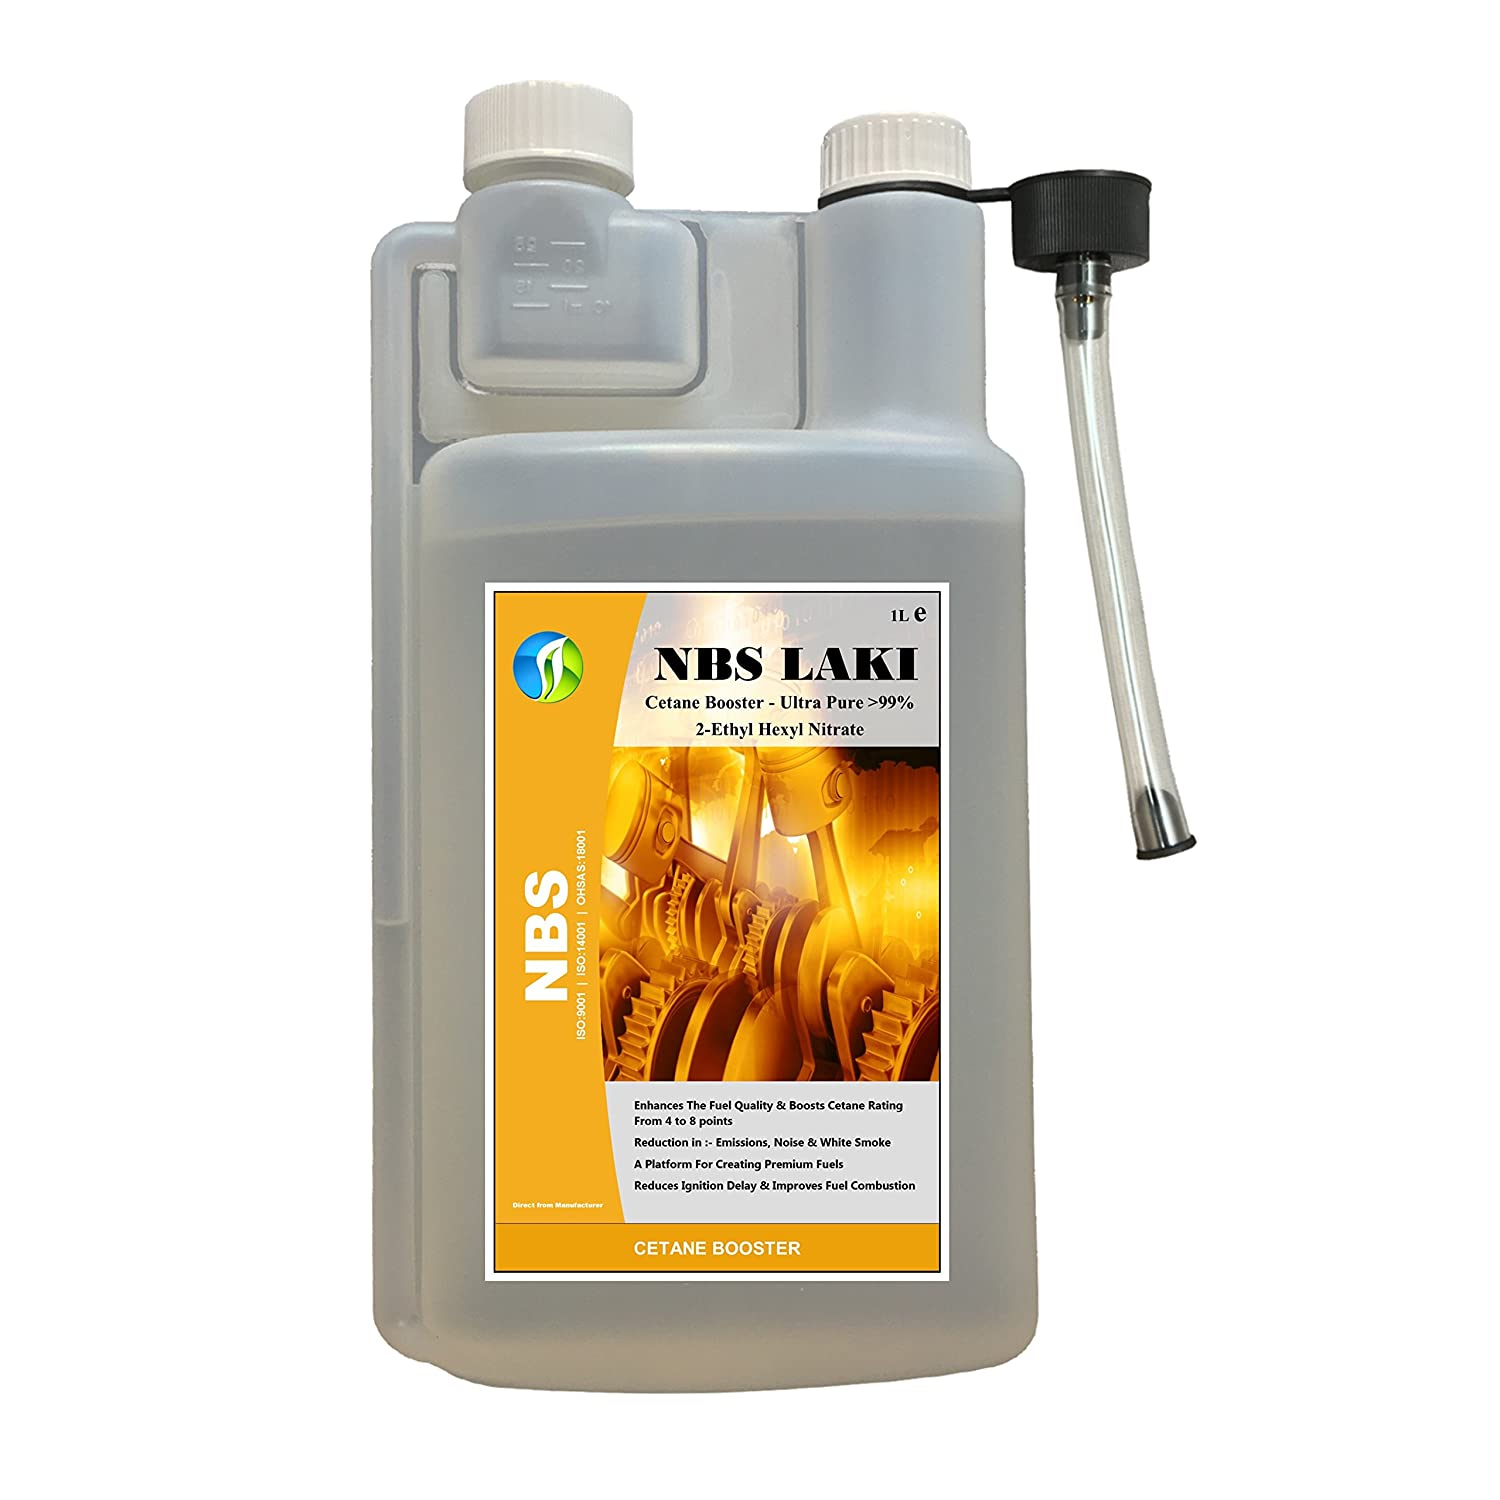 NBS LAKI Cetane Booster Additif diesel ultra pur > 99%, 2-é thyl Hexyl nitrate, 1L 2-éthyl Hexyl nitrate Natures Bio Solutions Ltd.